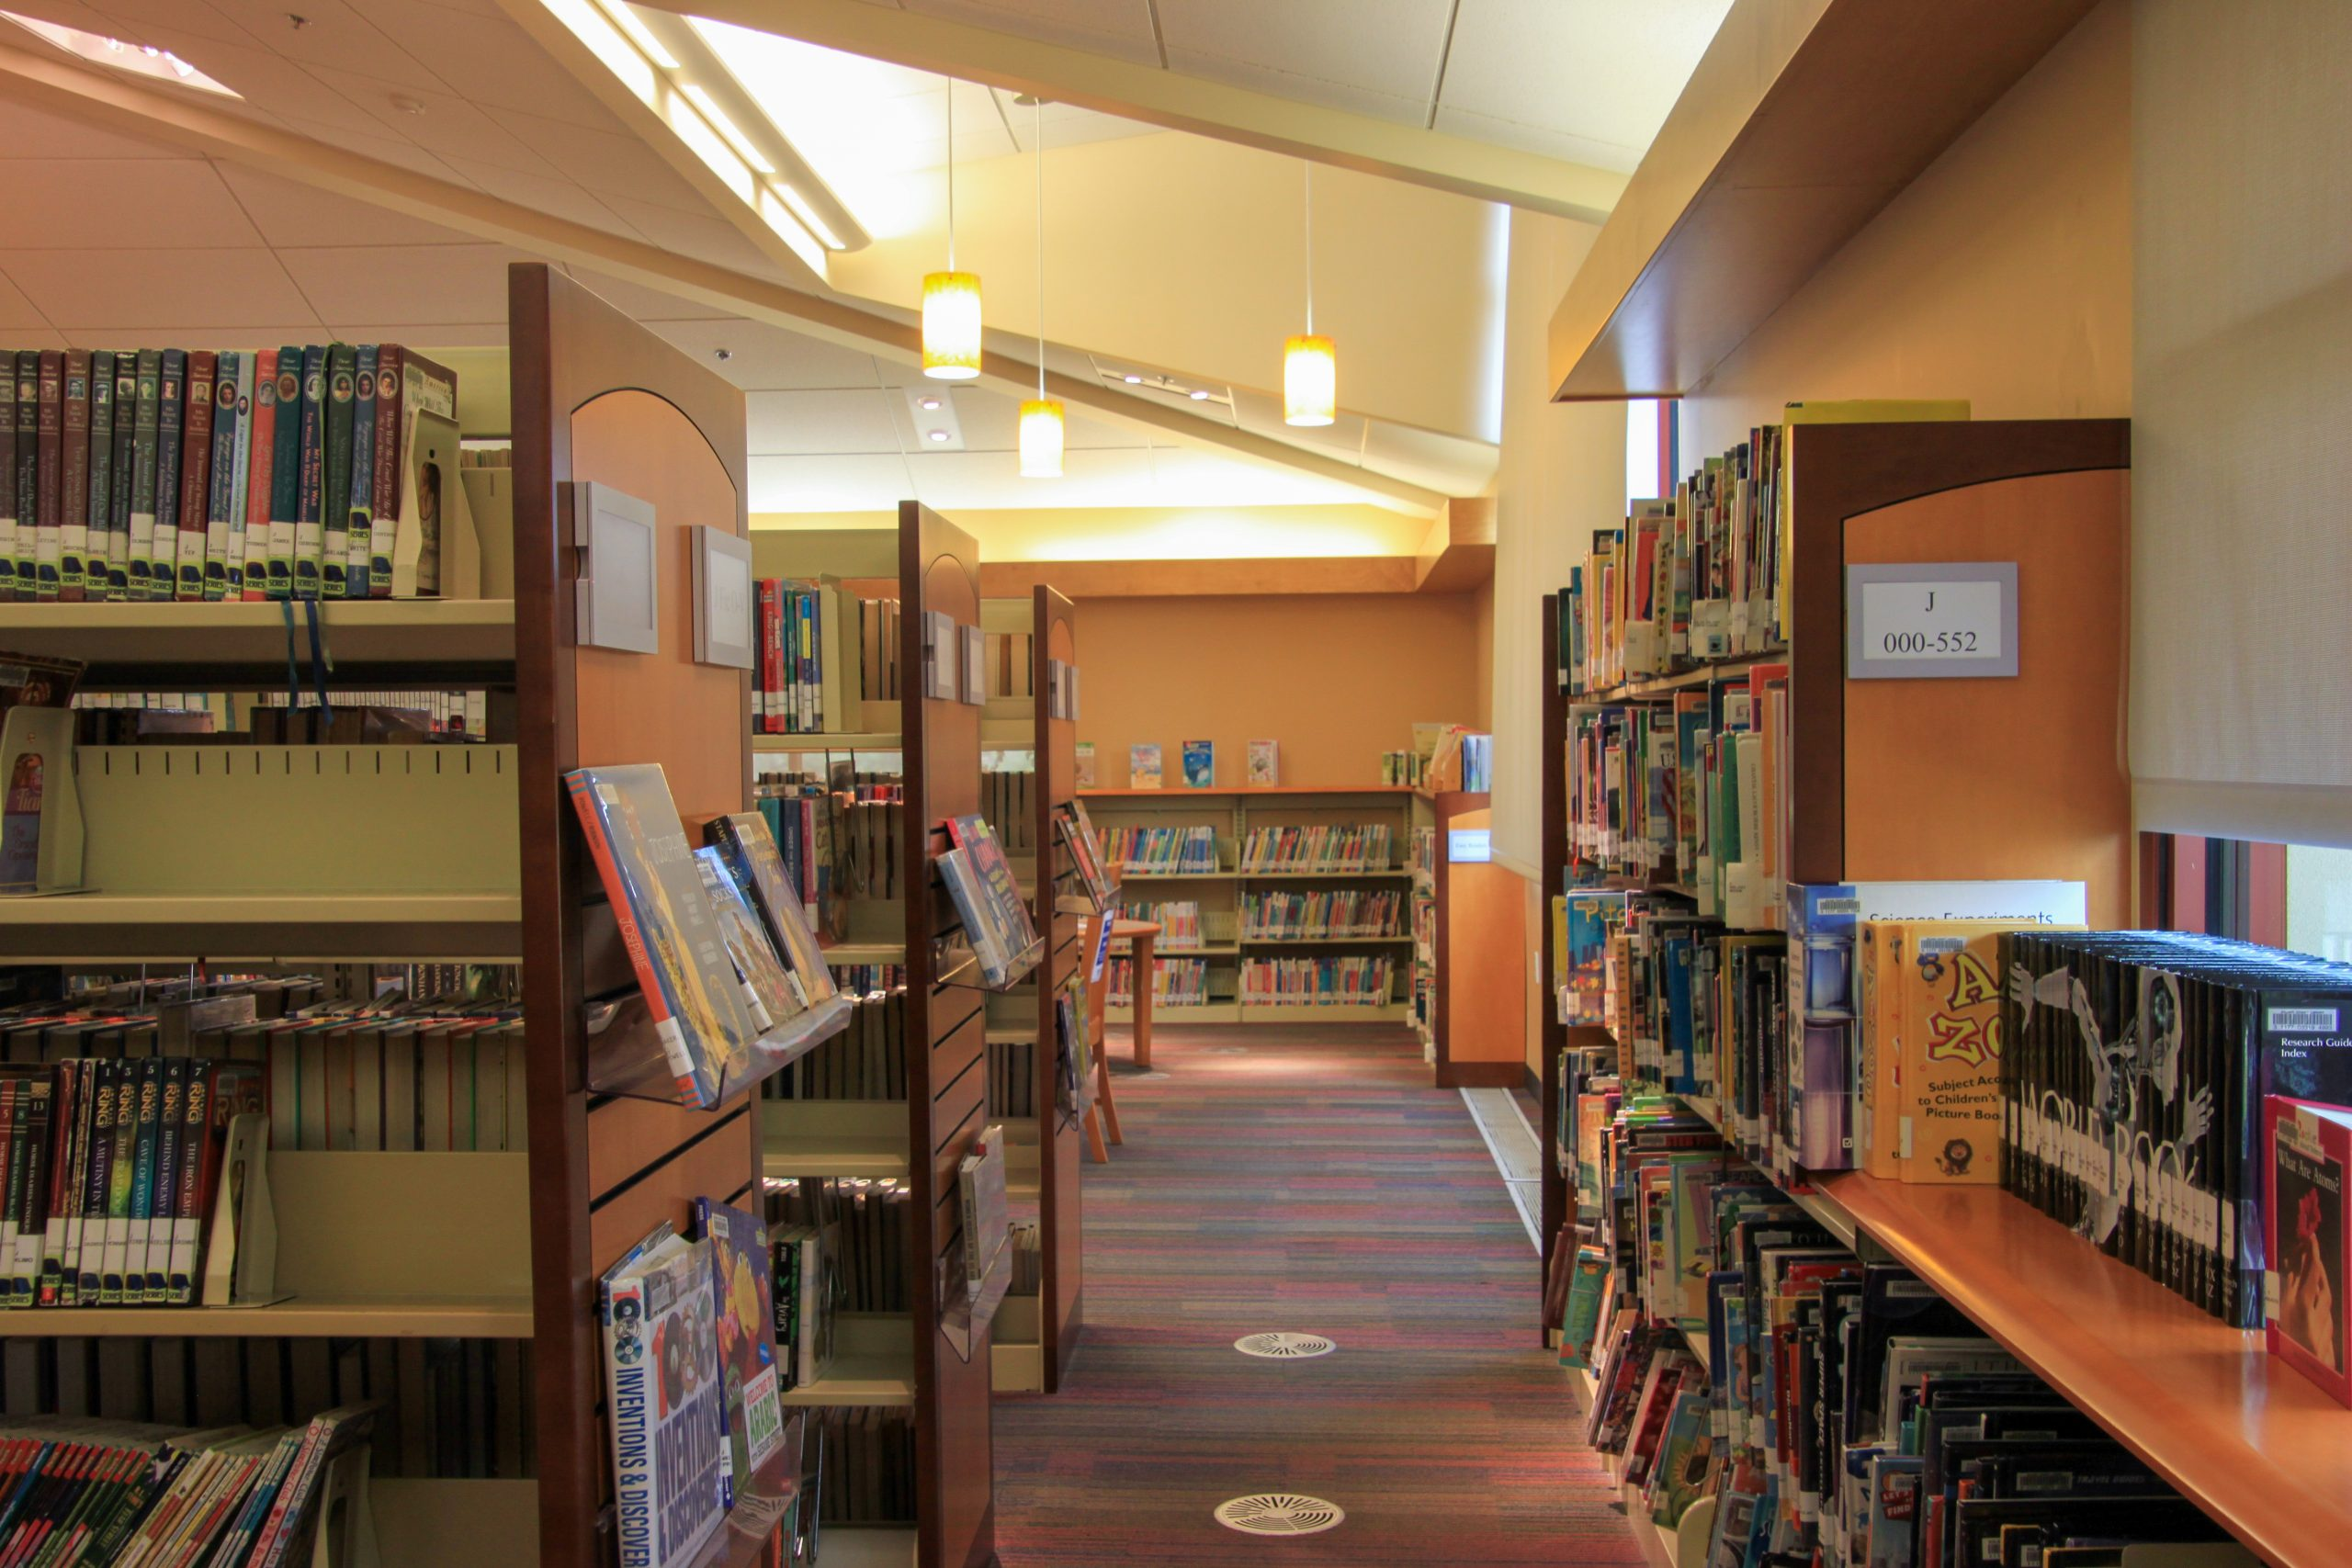 The Children's Library In Fairfield Cordelia Library.